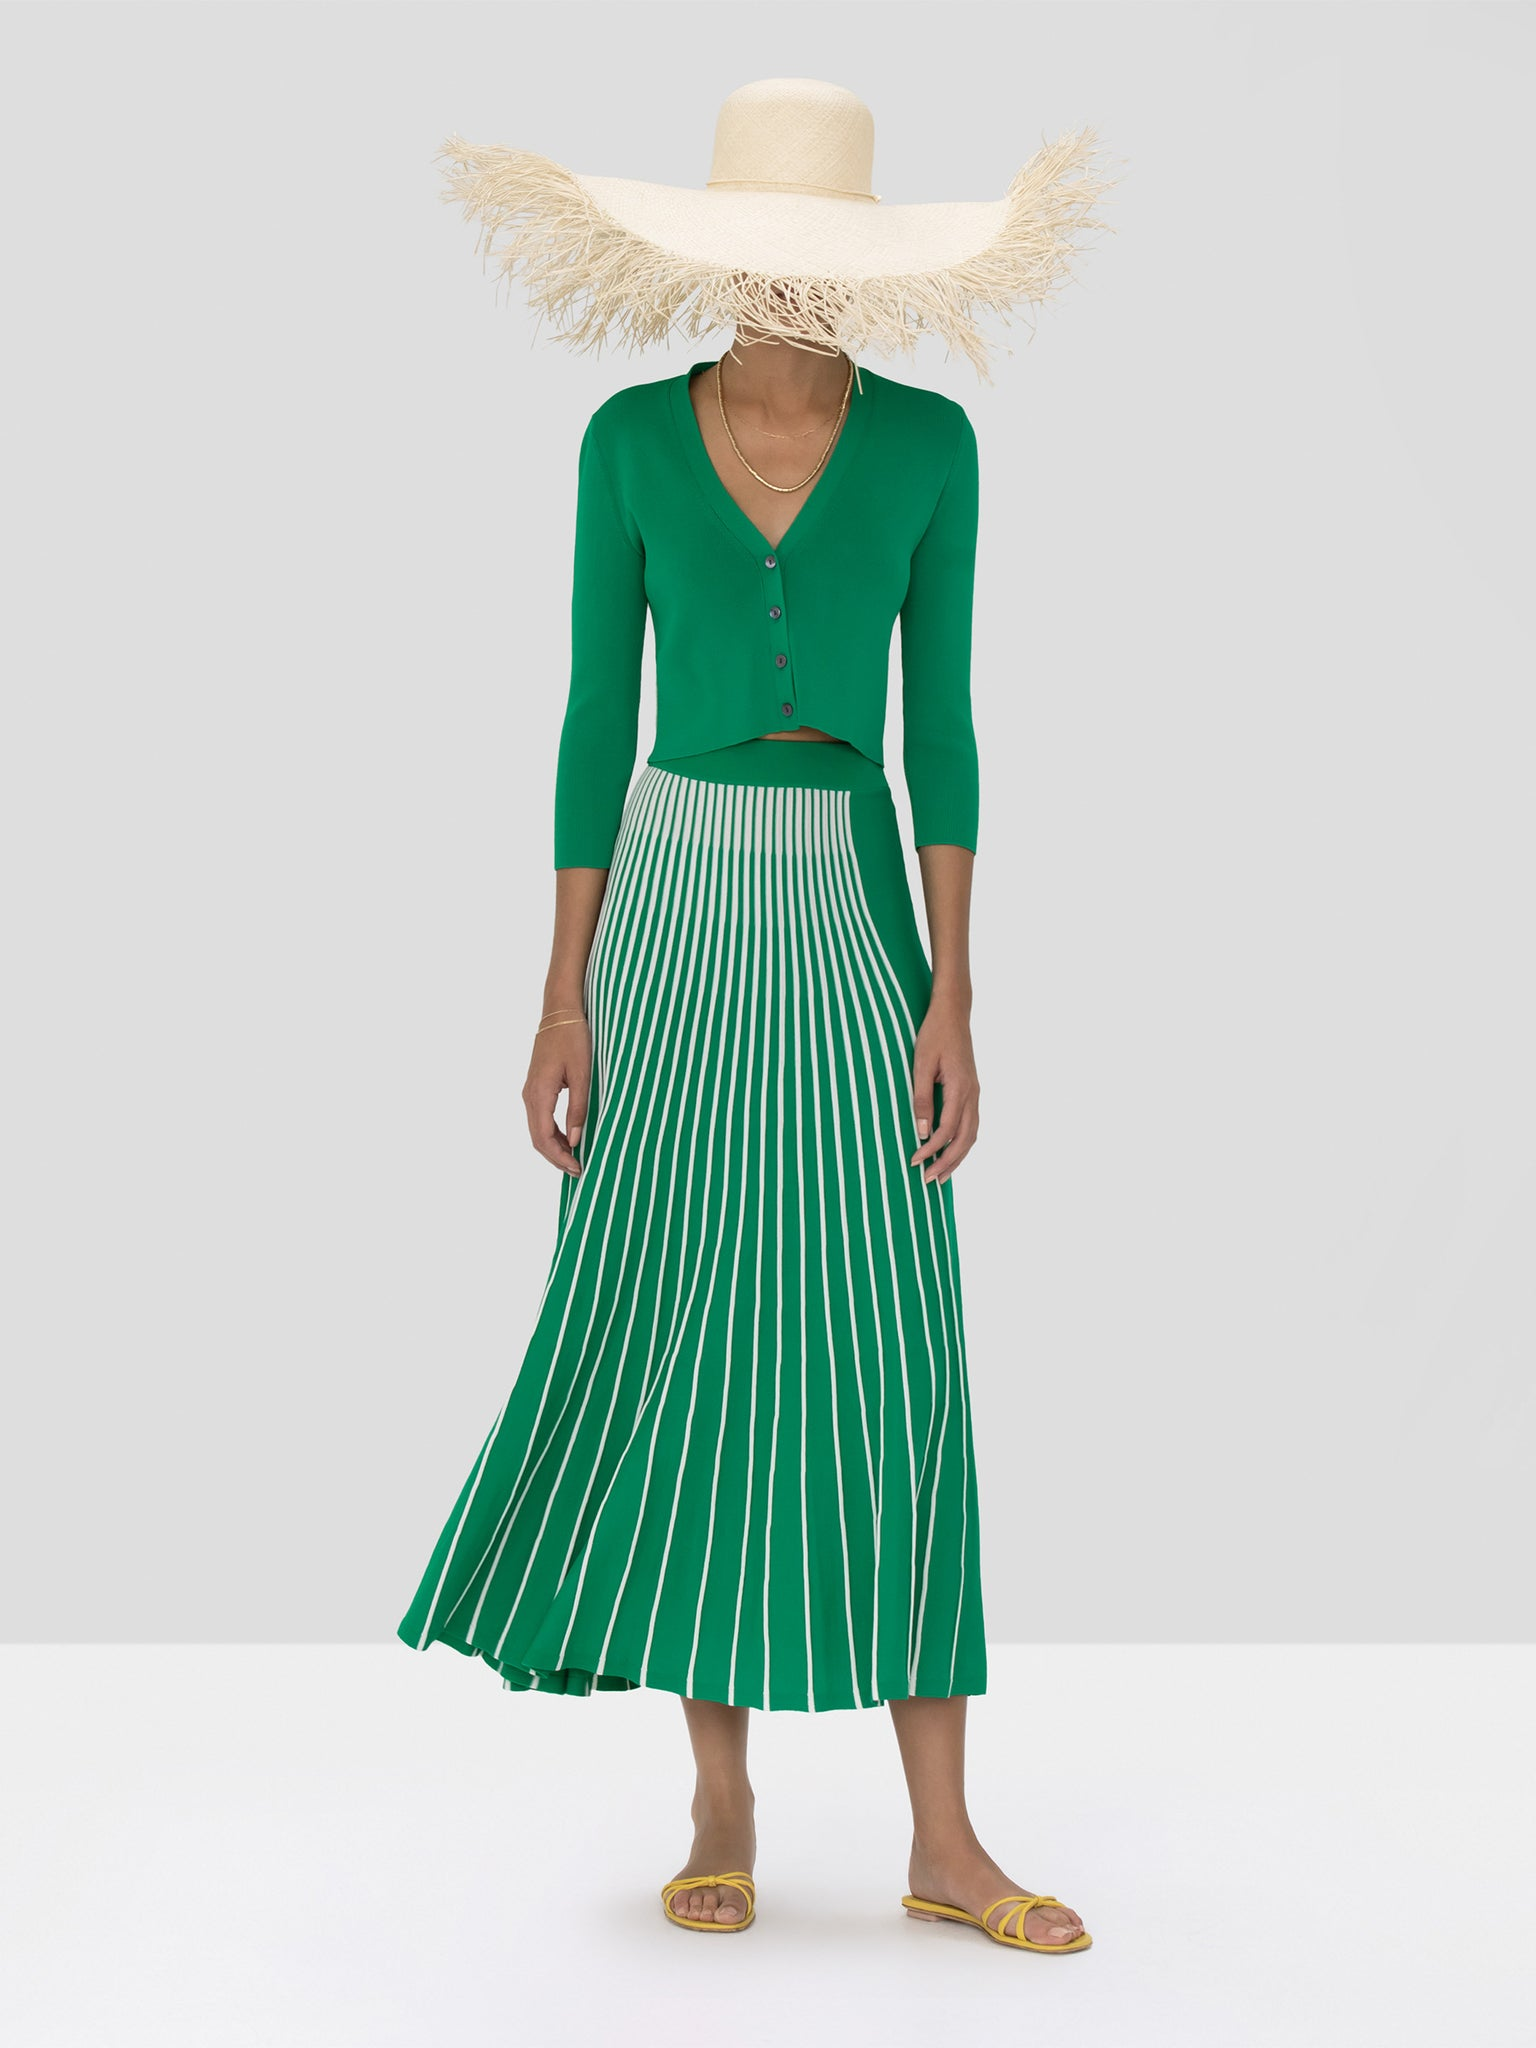 Alexis Petal Cardigan in Green and Vani Skirt in Green and White Stripes from Spring Summer 2020